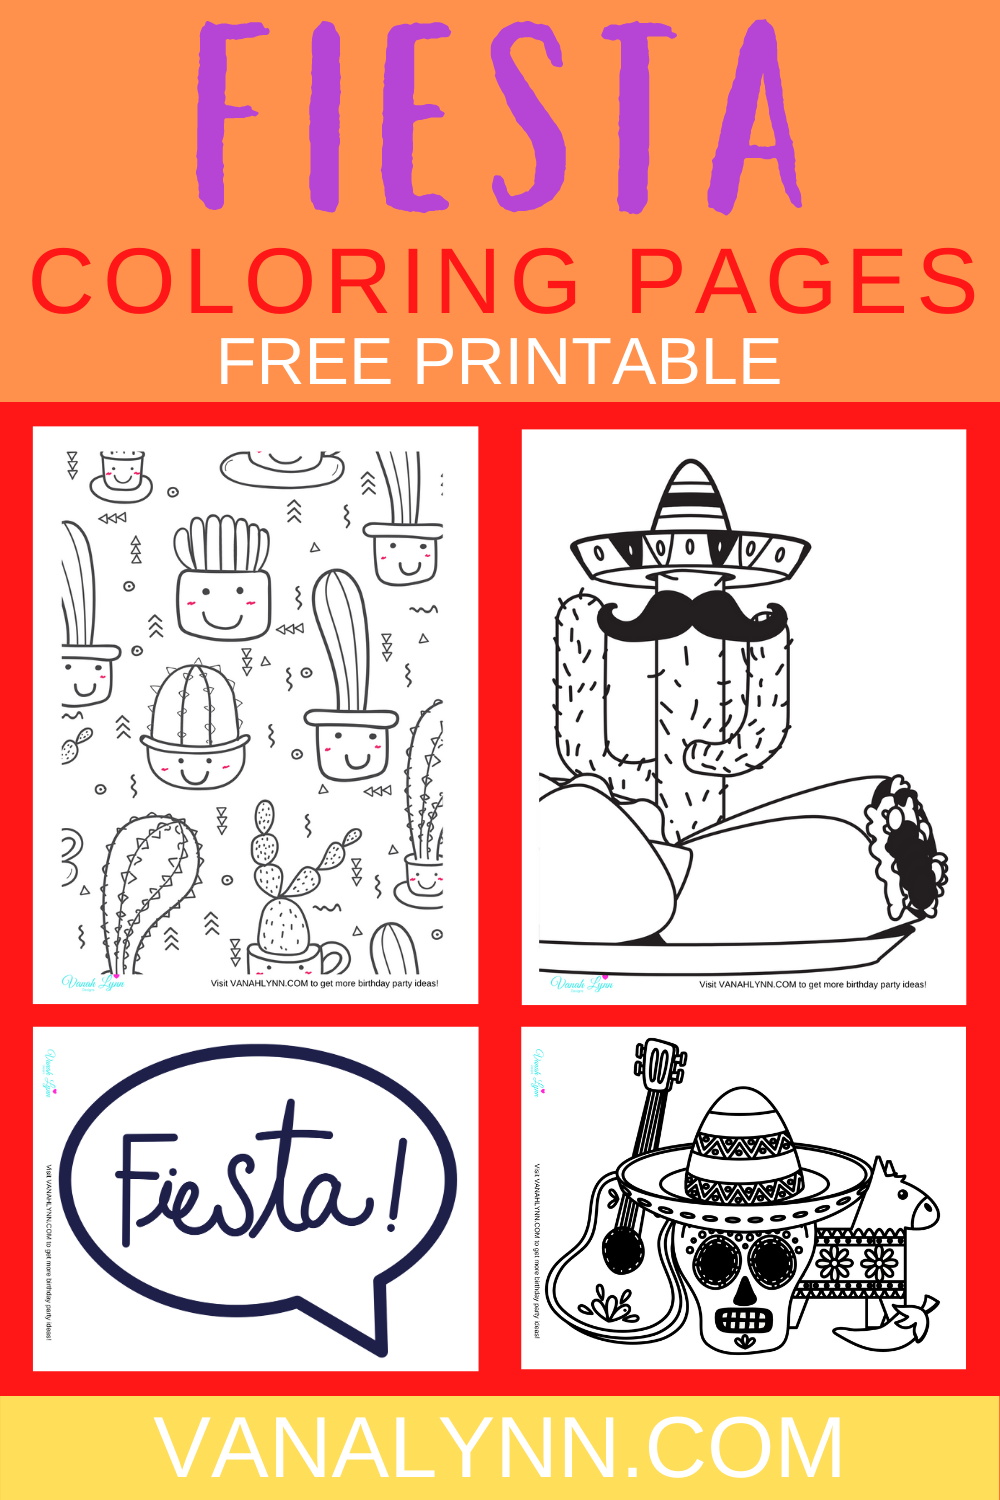 free download: fiesta themed coloring sheets